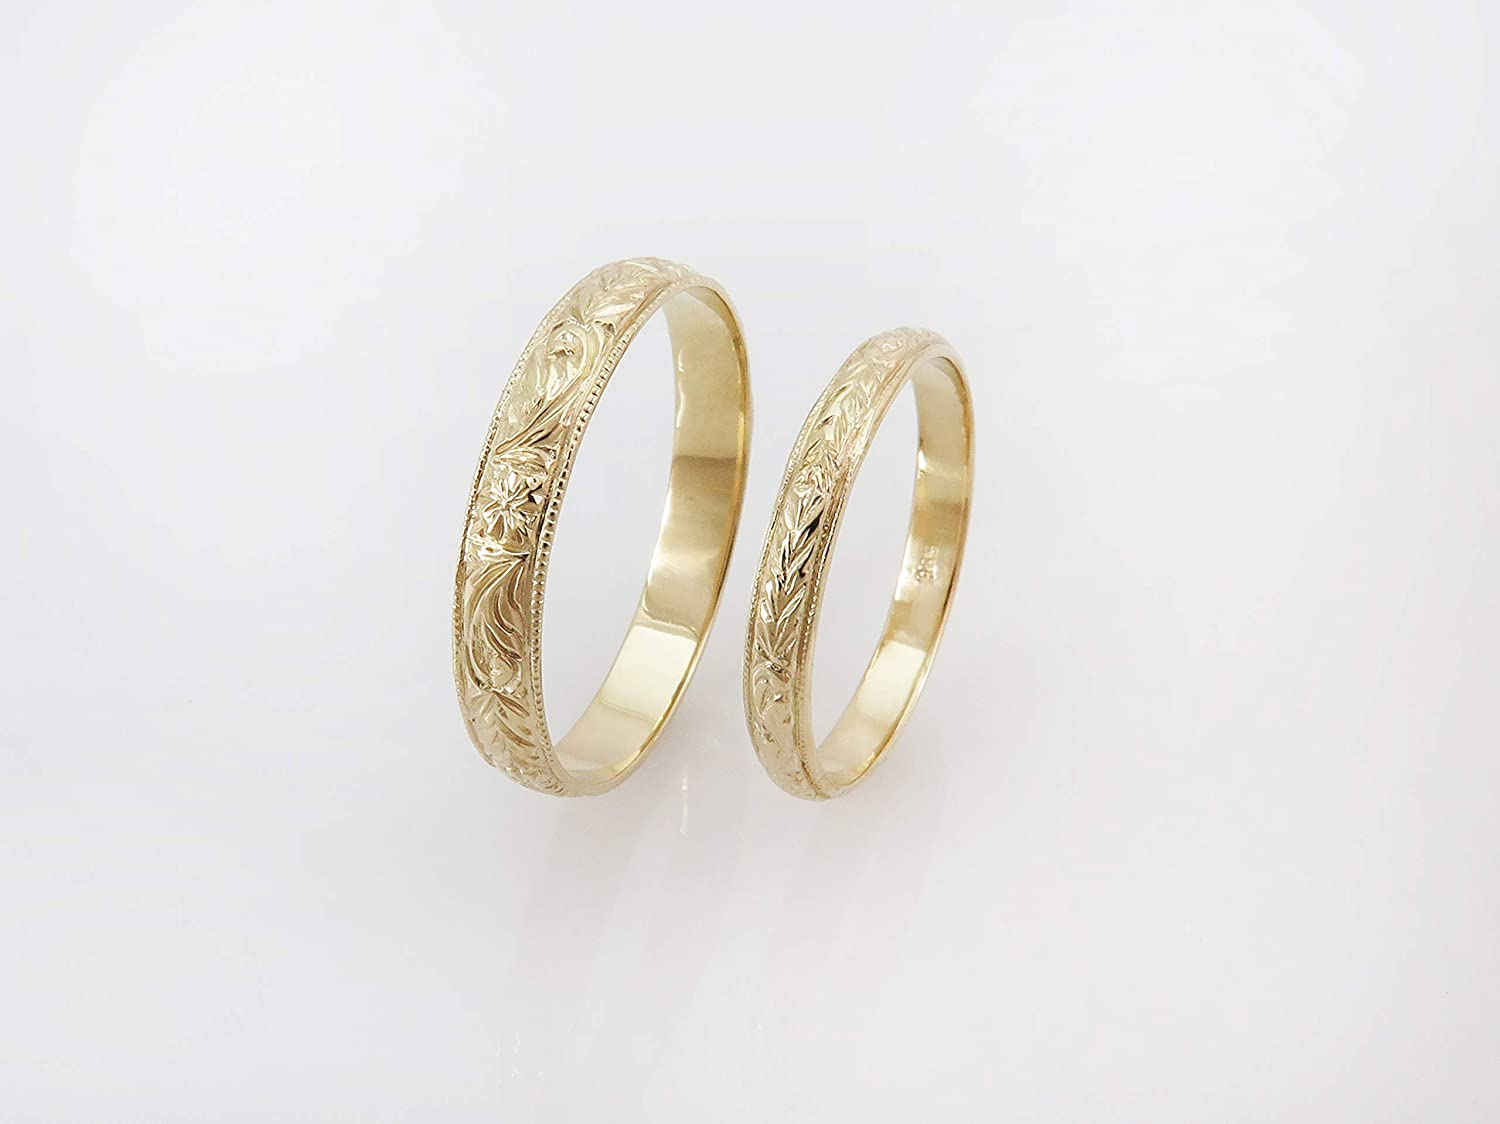 His and Her Wedding Rings, Set of 2 Vintage Style Wedding Bands for Men and Women, Handmade Victorian Antique Style Ring Set with Flower Pattern Made of Solid 14k/18K Yellow Gold